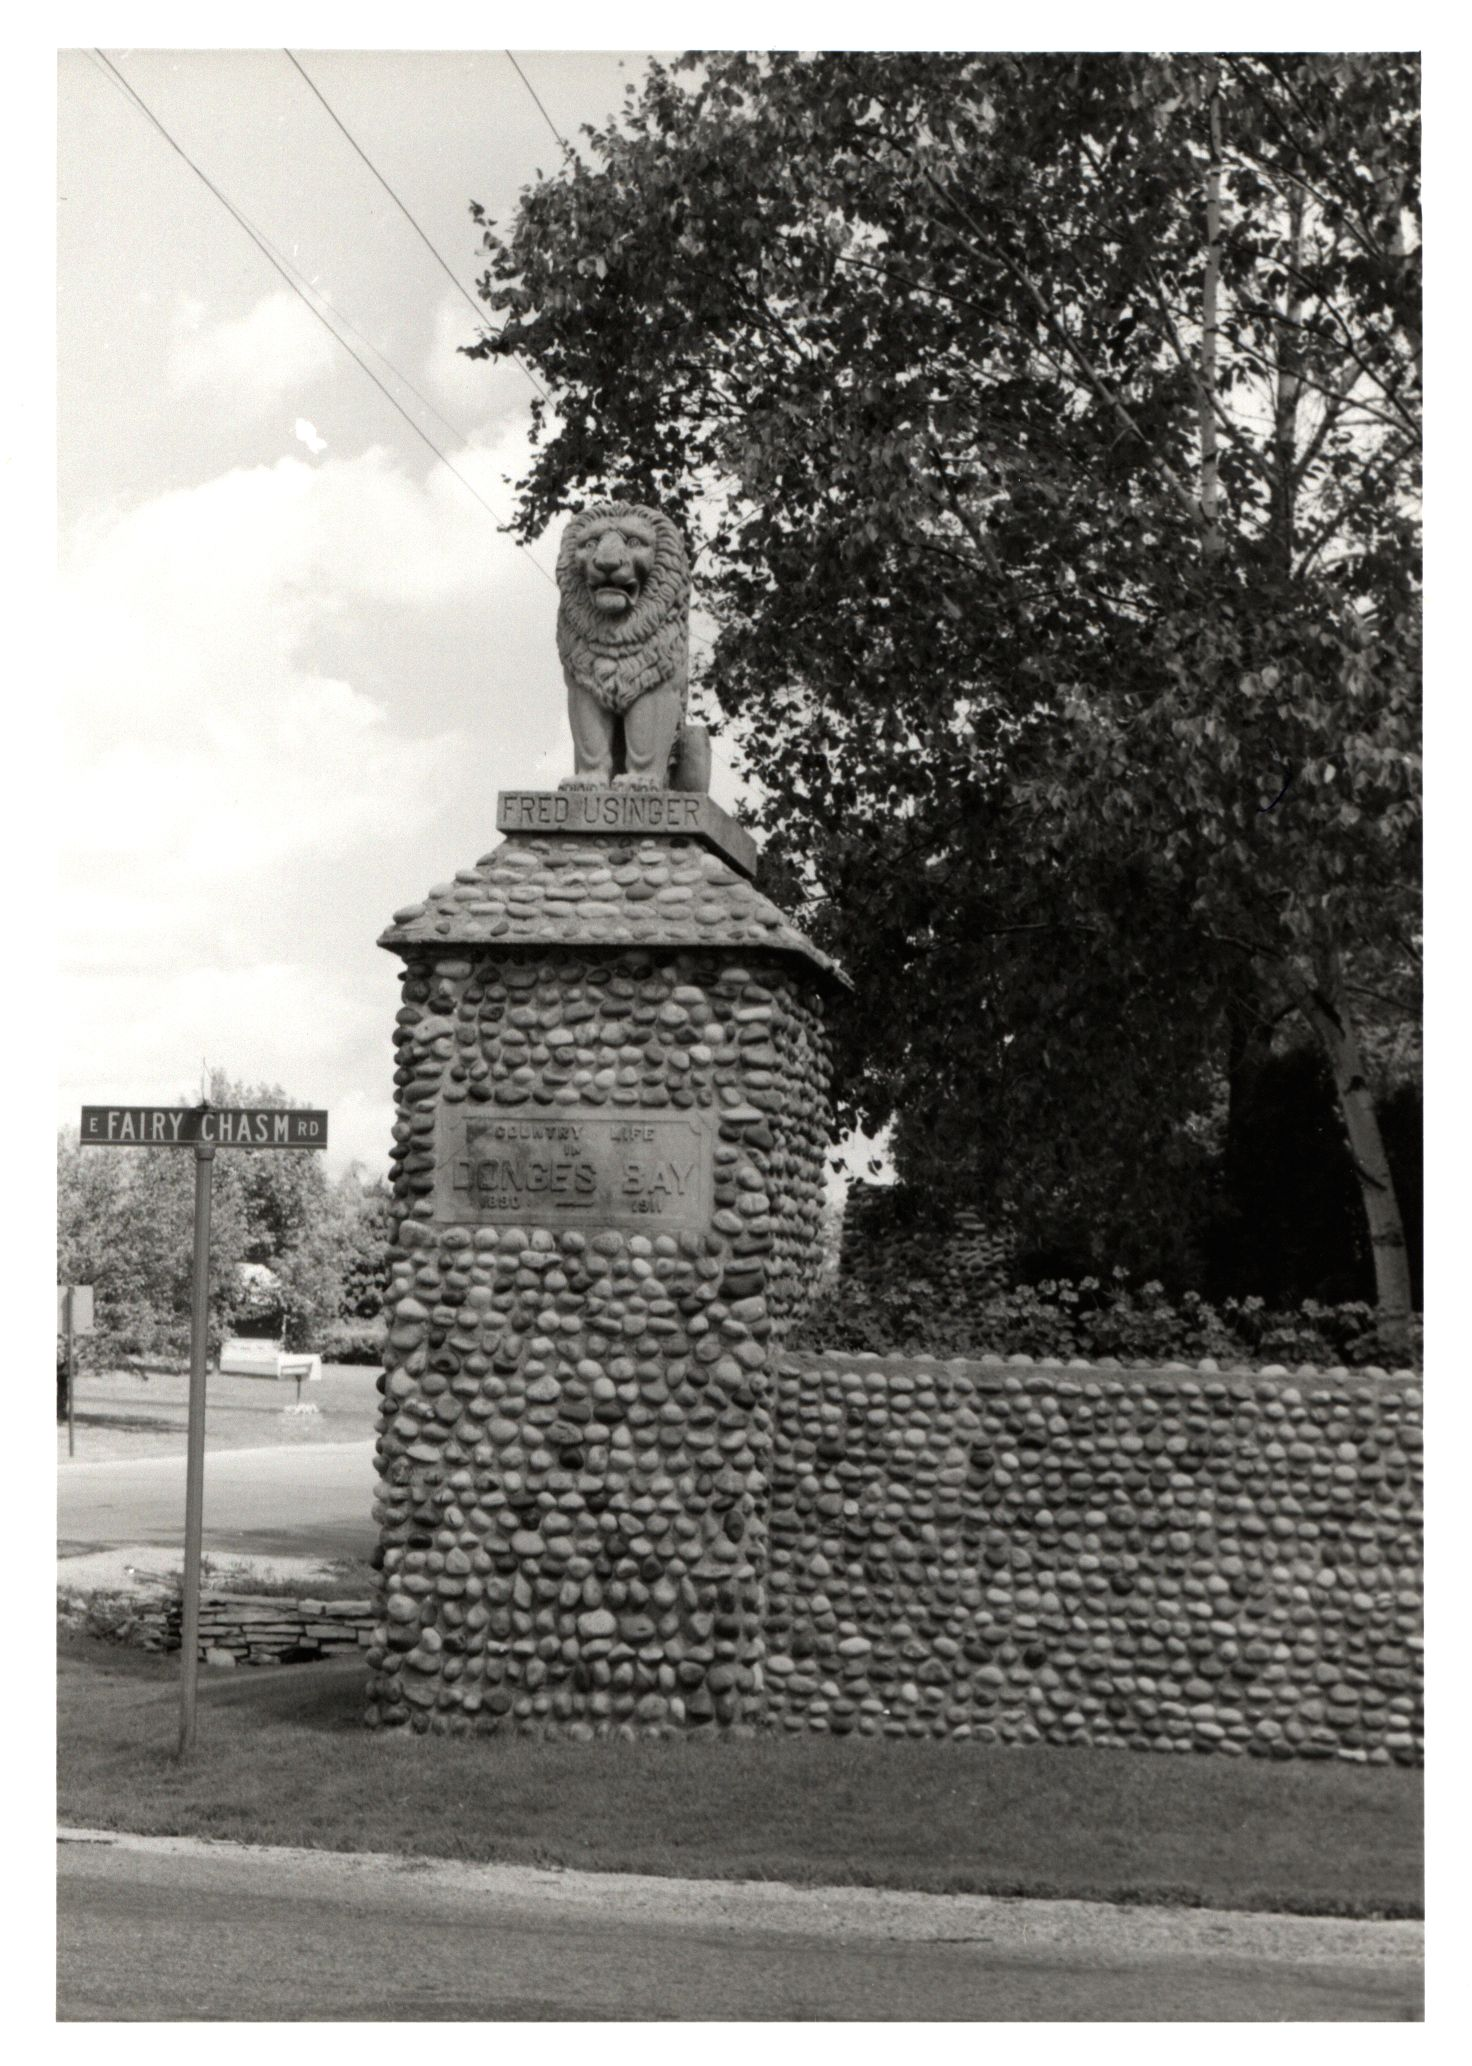 Located at the intersection of Lake Drive and Fairy Chasm Road, Bayside's iconic Lion Gate was built in 1911 by Frederick Usinger and Jacob Donges. The men used the gate to mark the entrance to their estates that were then part of South Fairy Chasm.